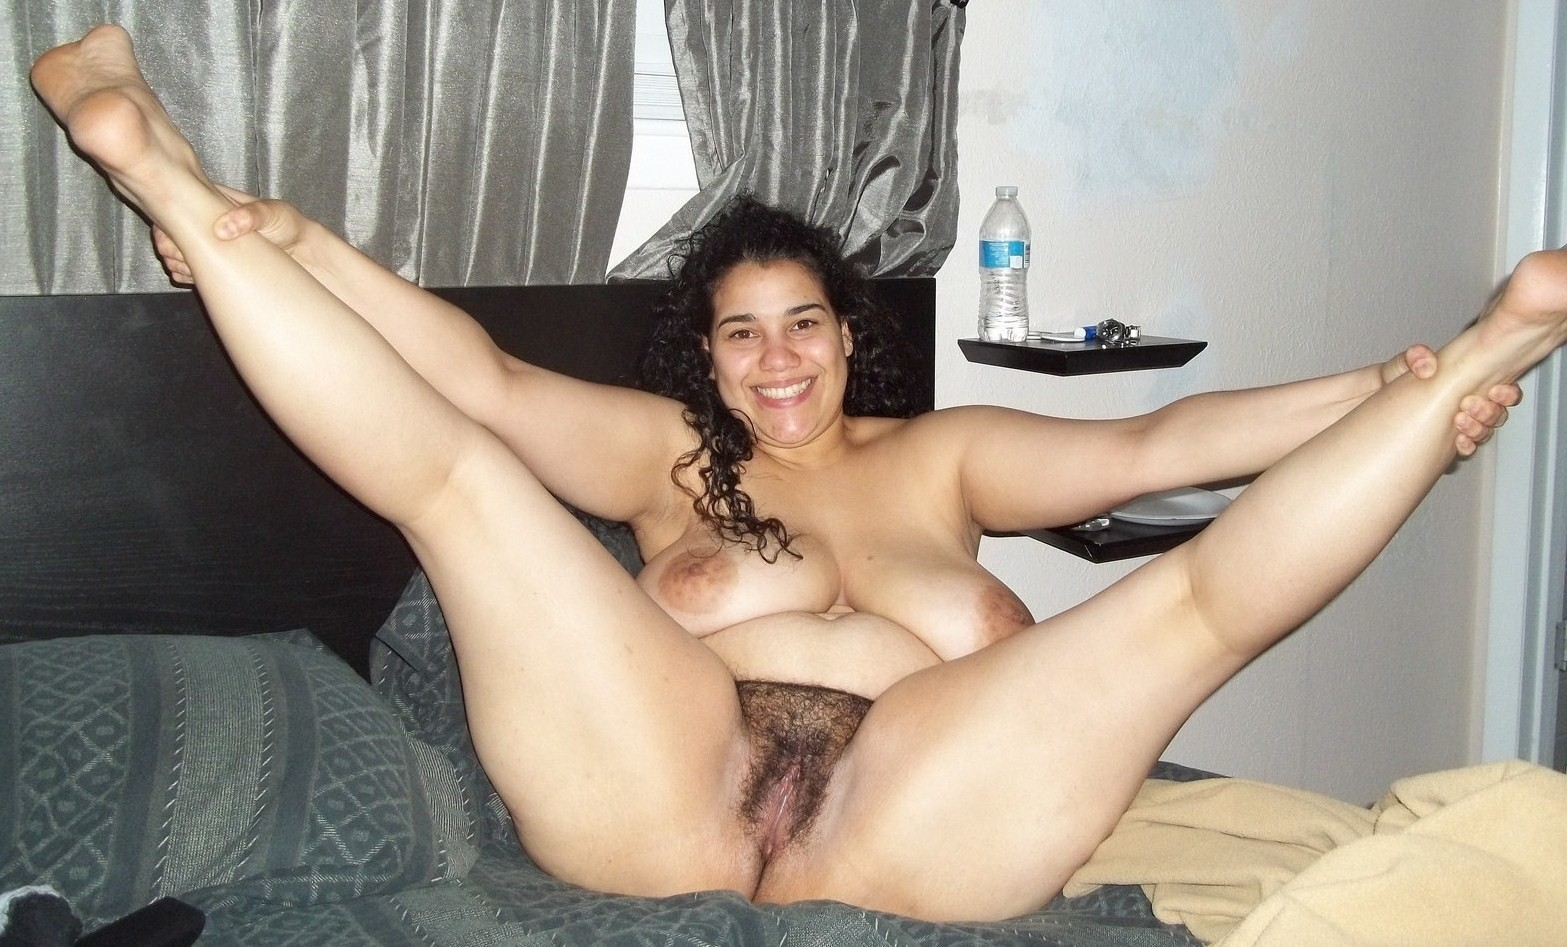 Milf hot mexican, islam religion of assholes